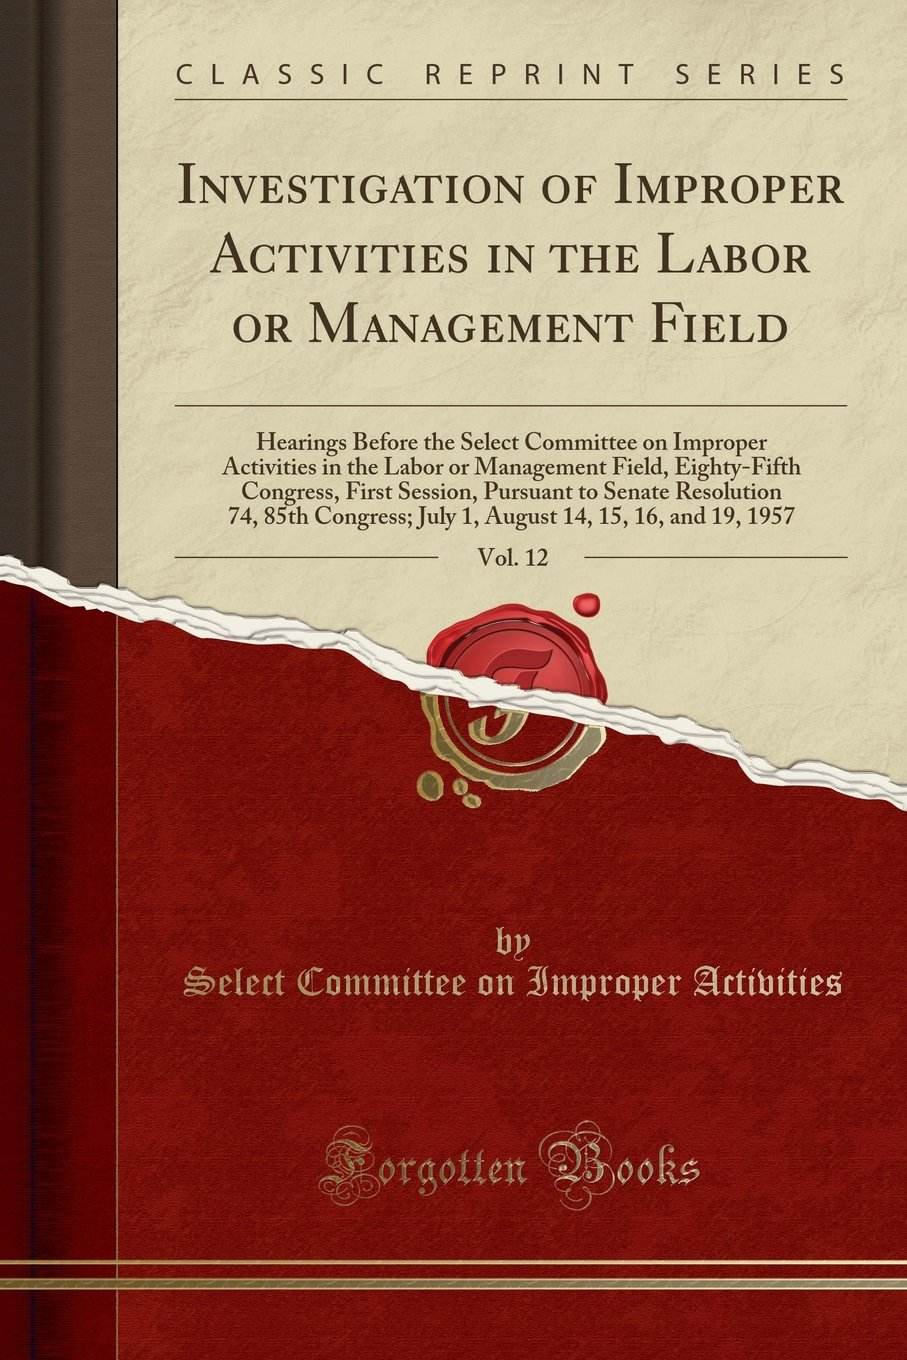 Download Investigation of Improper Activities in the Labor or Management Field, Vol. 12: Hearings Before the Select Committee on Improper Activities in the ... Pursuant to Senate Resolution 74, 85th Cong pdf epub